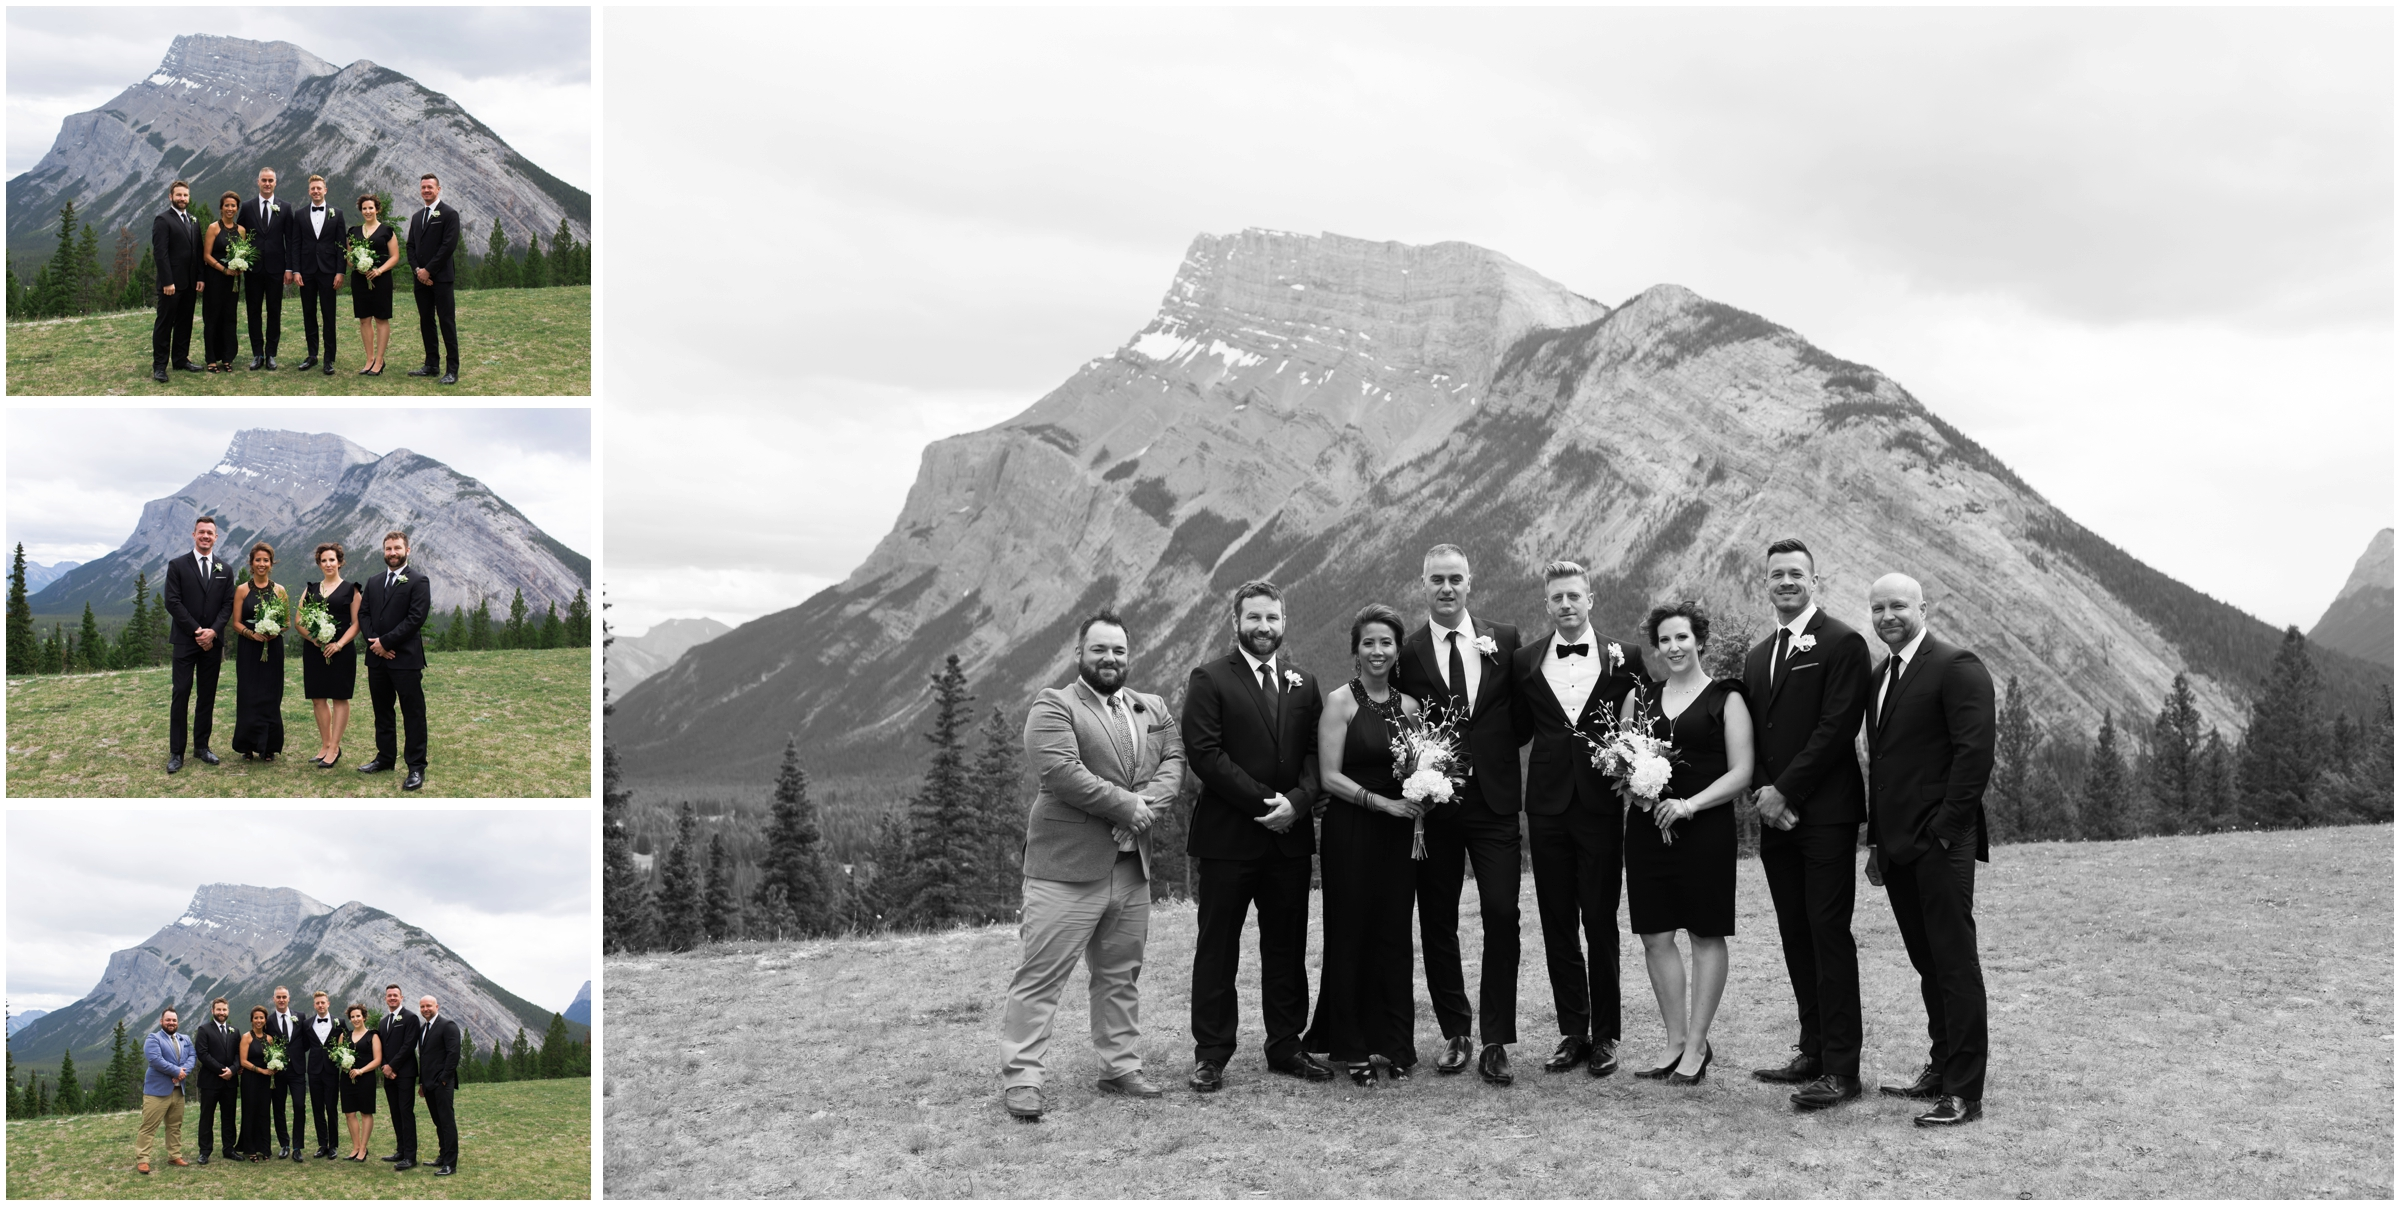 Banff Calgary Wedding - (Selena Phillips-Boyle)_0012.jpg